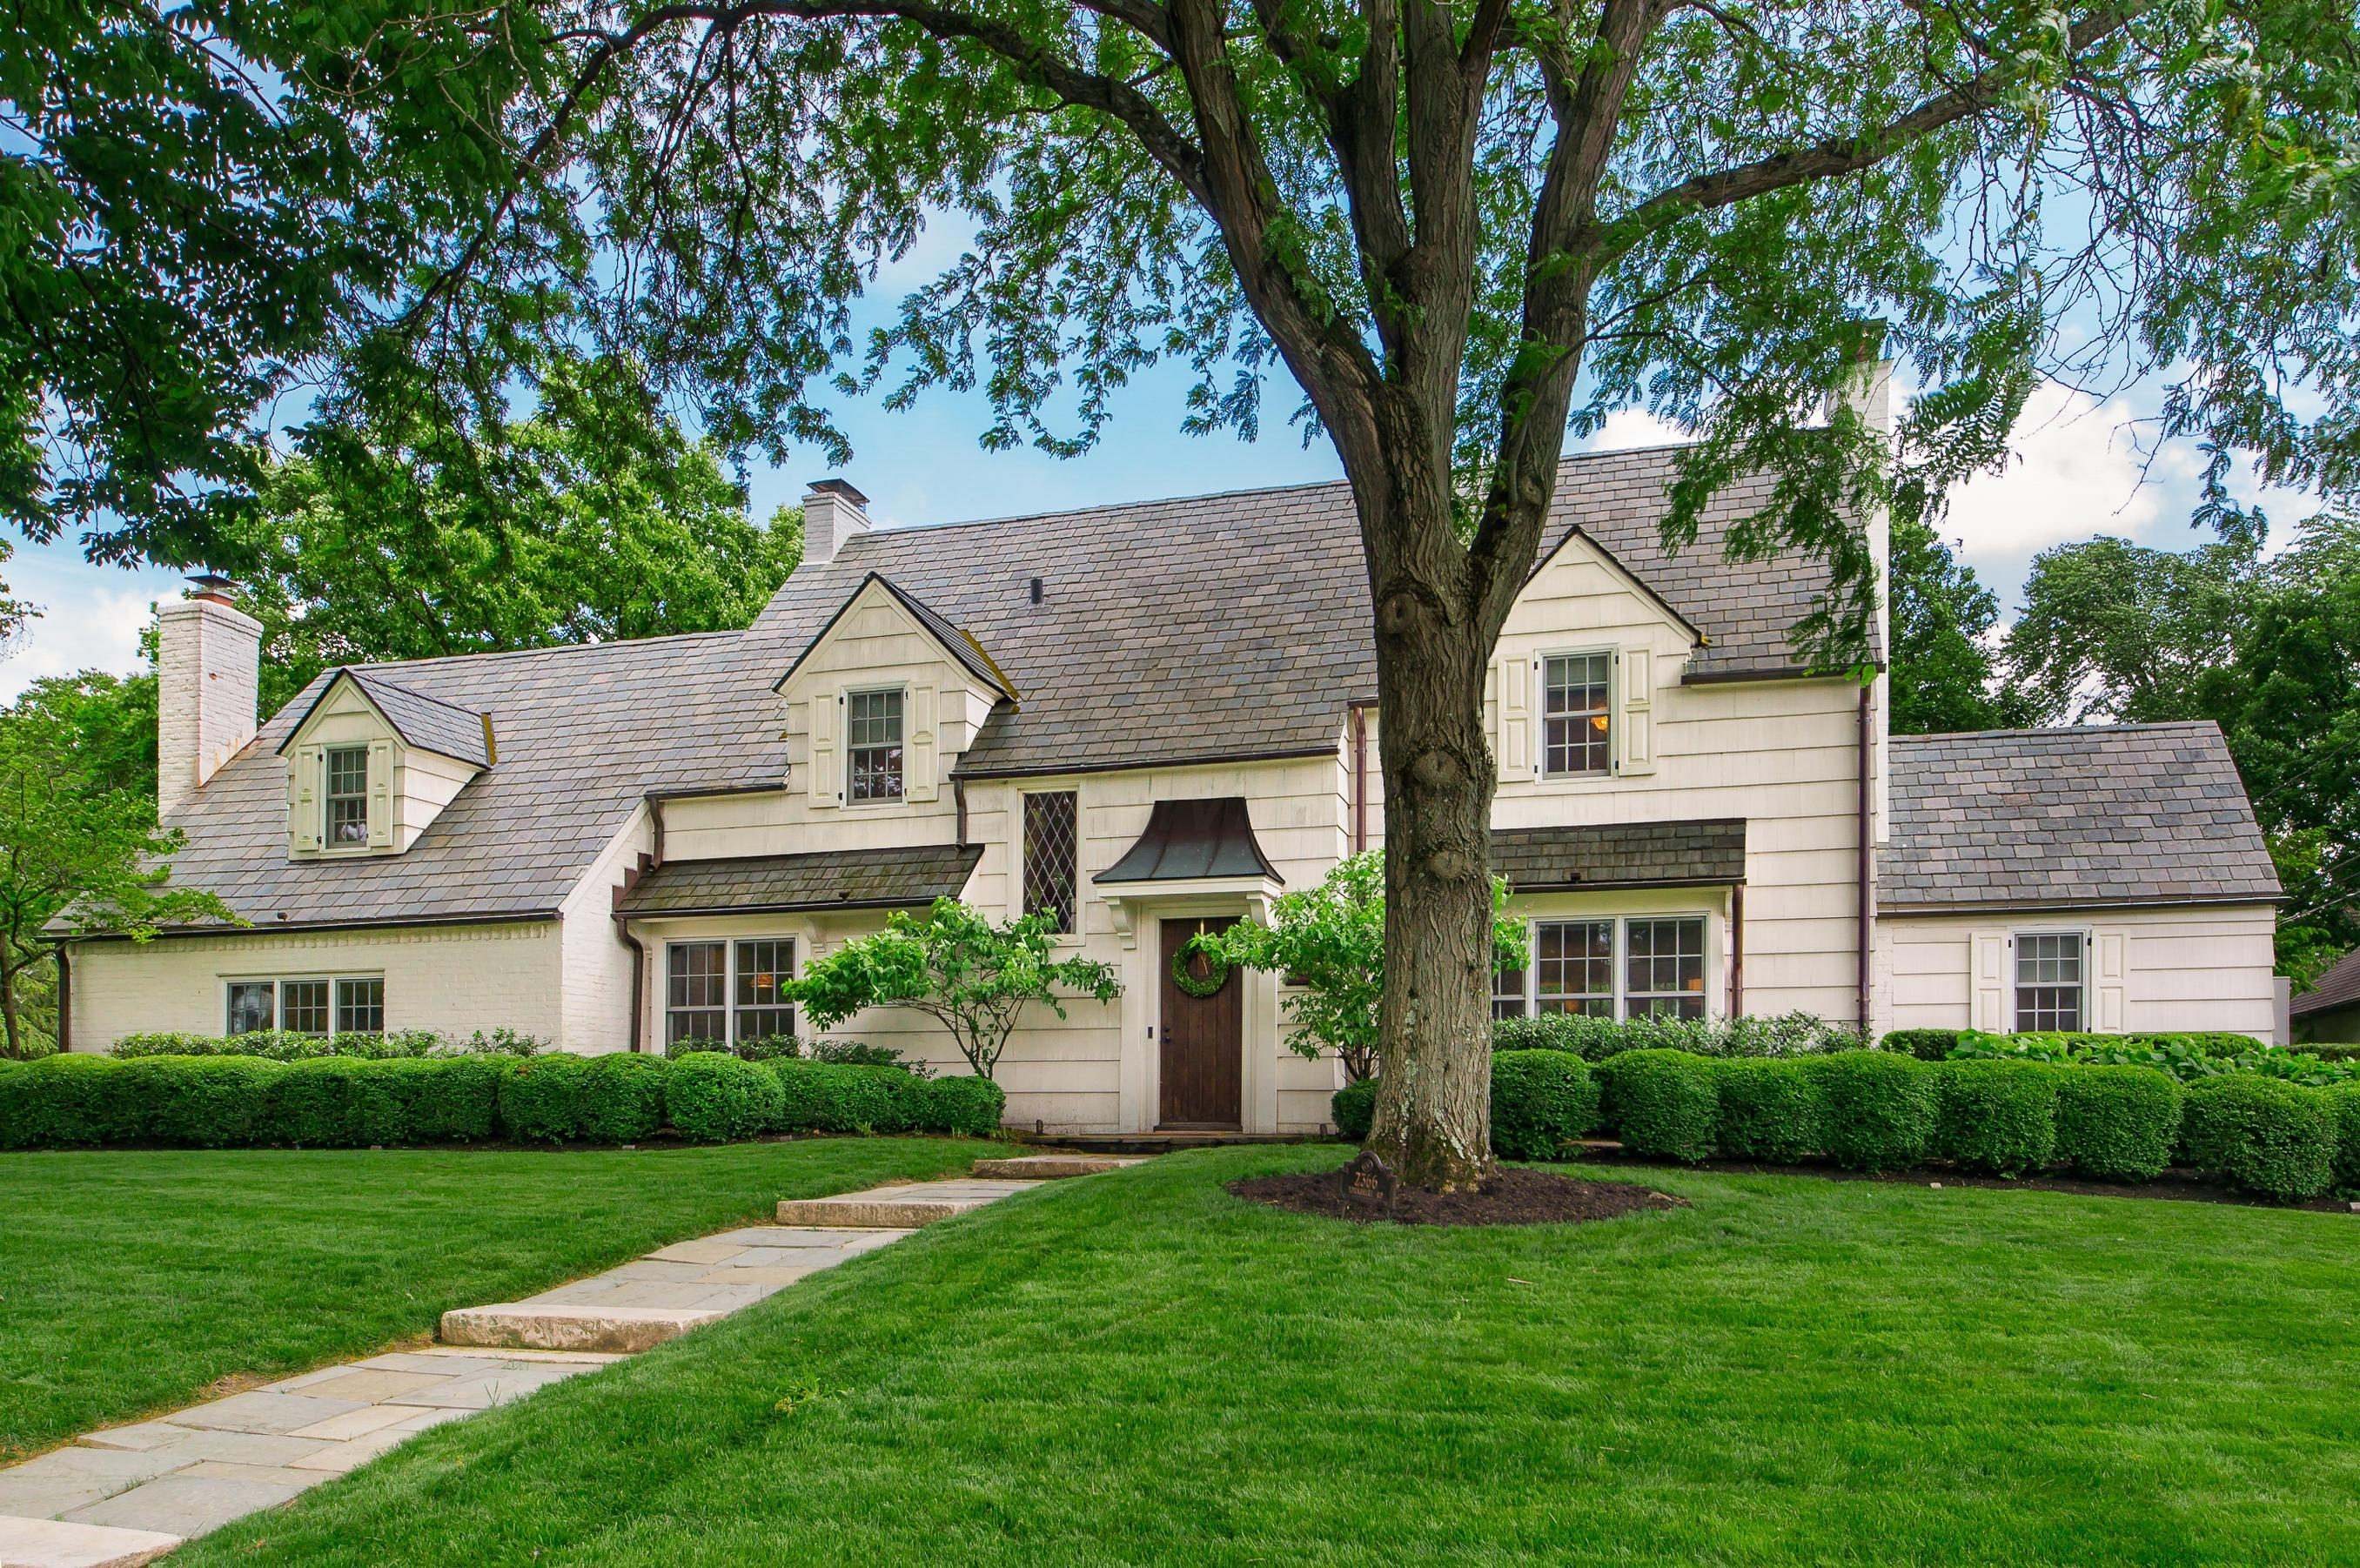 Photo of 2366 Yorkshire Road, Columbus, OH 43221